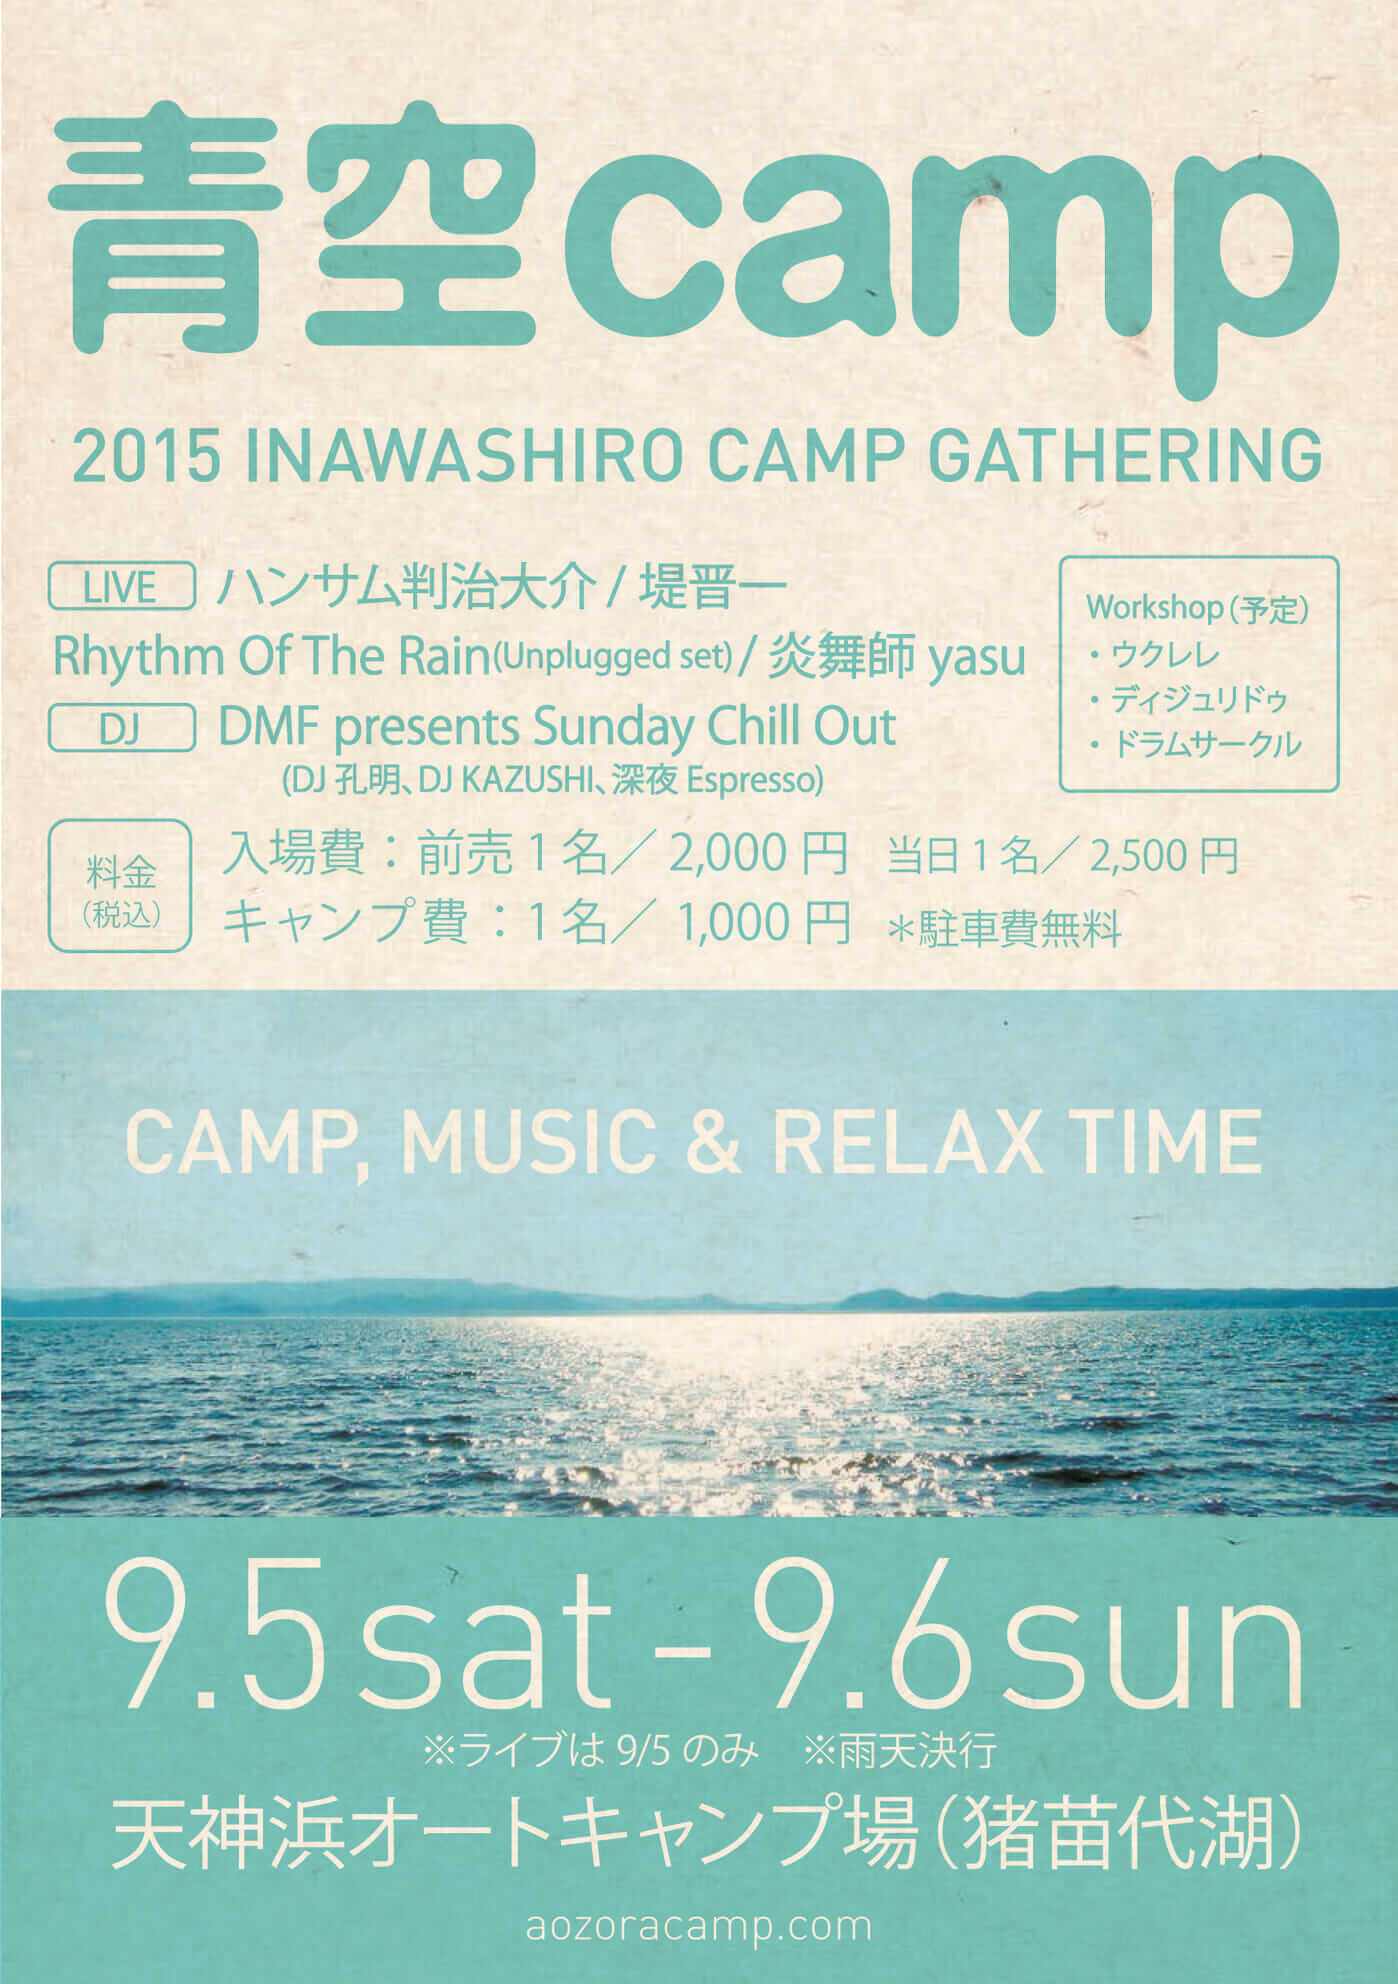 青空CAMP in INAWASHIRO